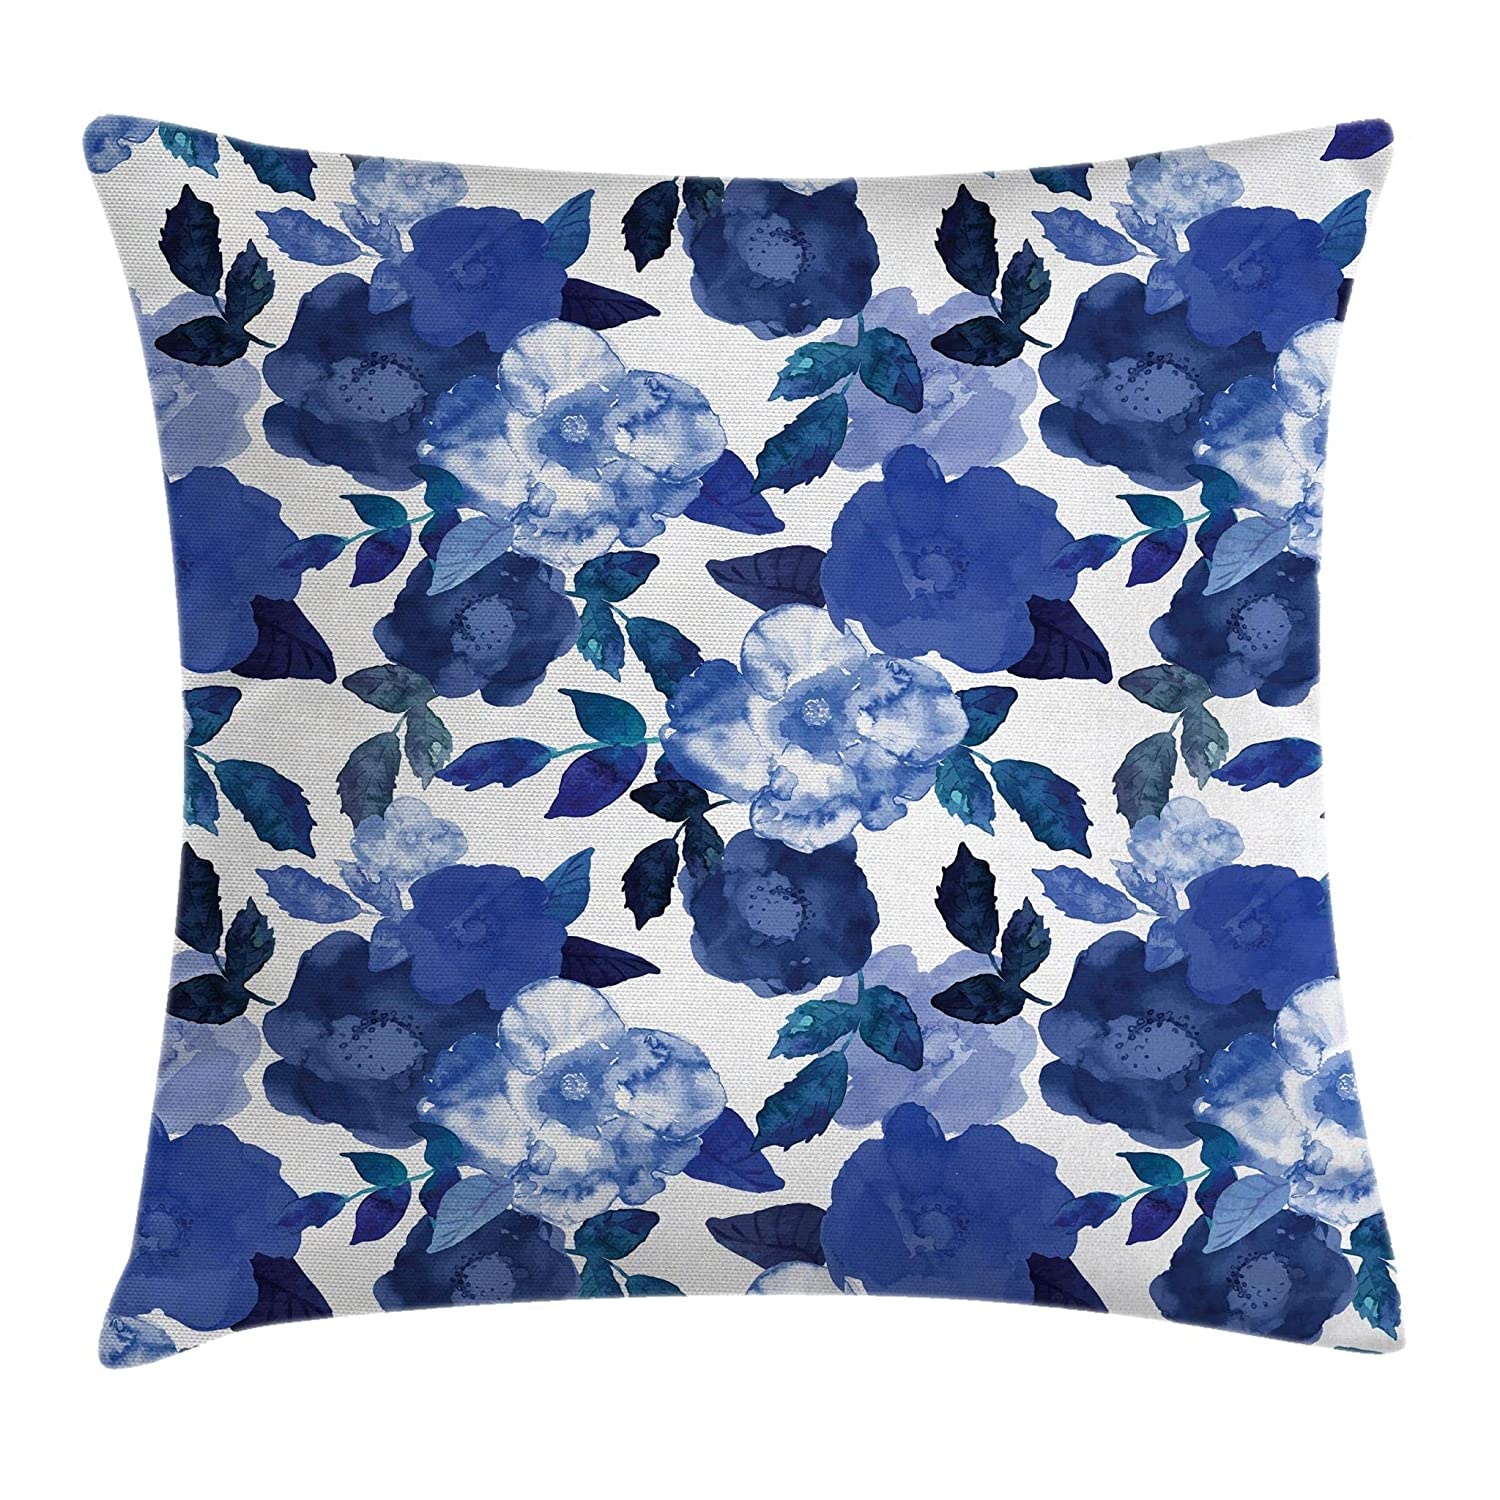 Ambesonne Flower Throw Pillow Cushion Cover by, Lively Watercolor Painted Simplistic Large Flowers and Leaves Vivid Spring, Decorative Square Accent Pillow Case, 18 X 18 Inches, White Royal Blue